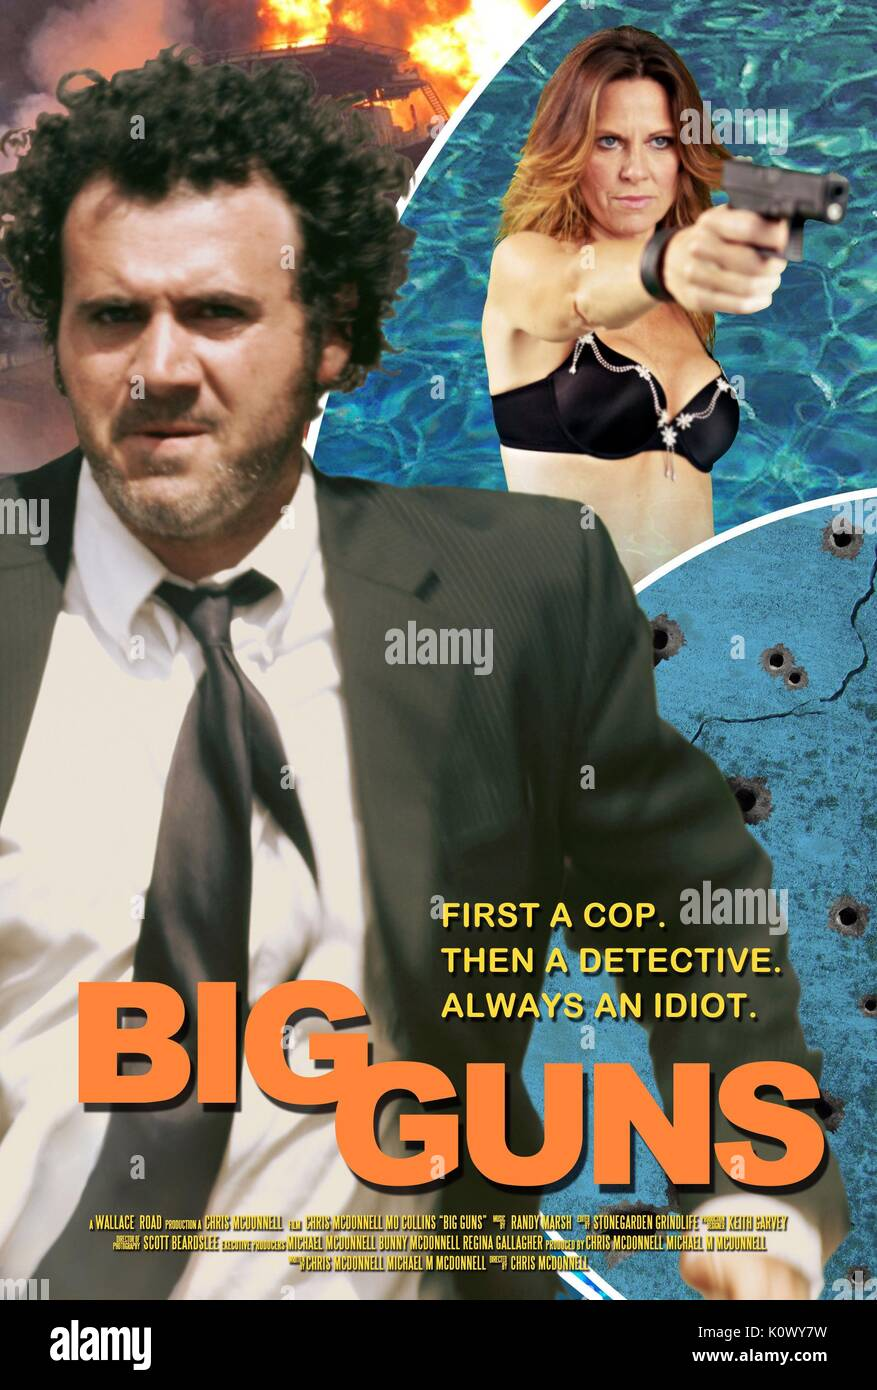 CHRIS MCDONNELL & MO COLLINS MCDICK; BIG GUNS (2015) - Stock Image